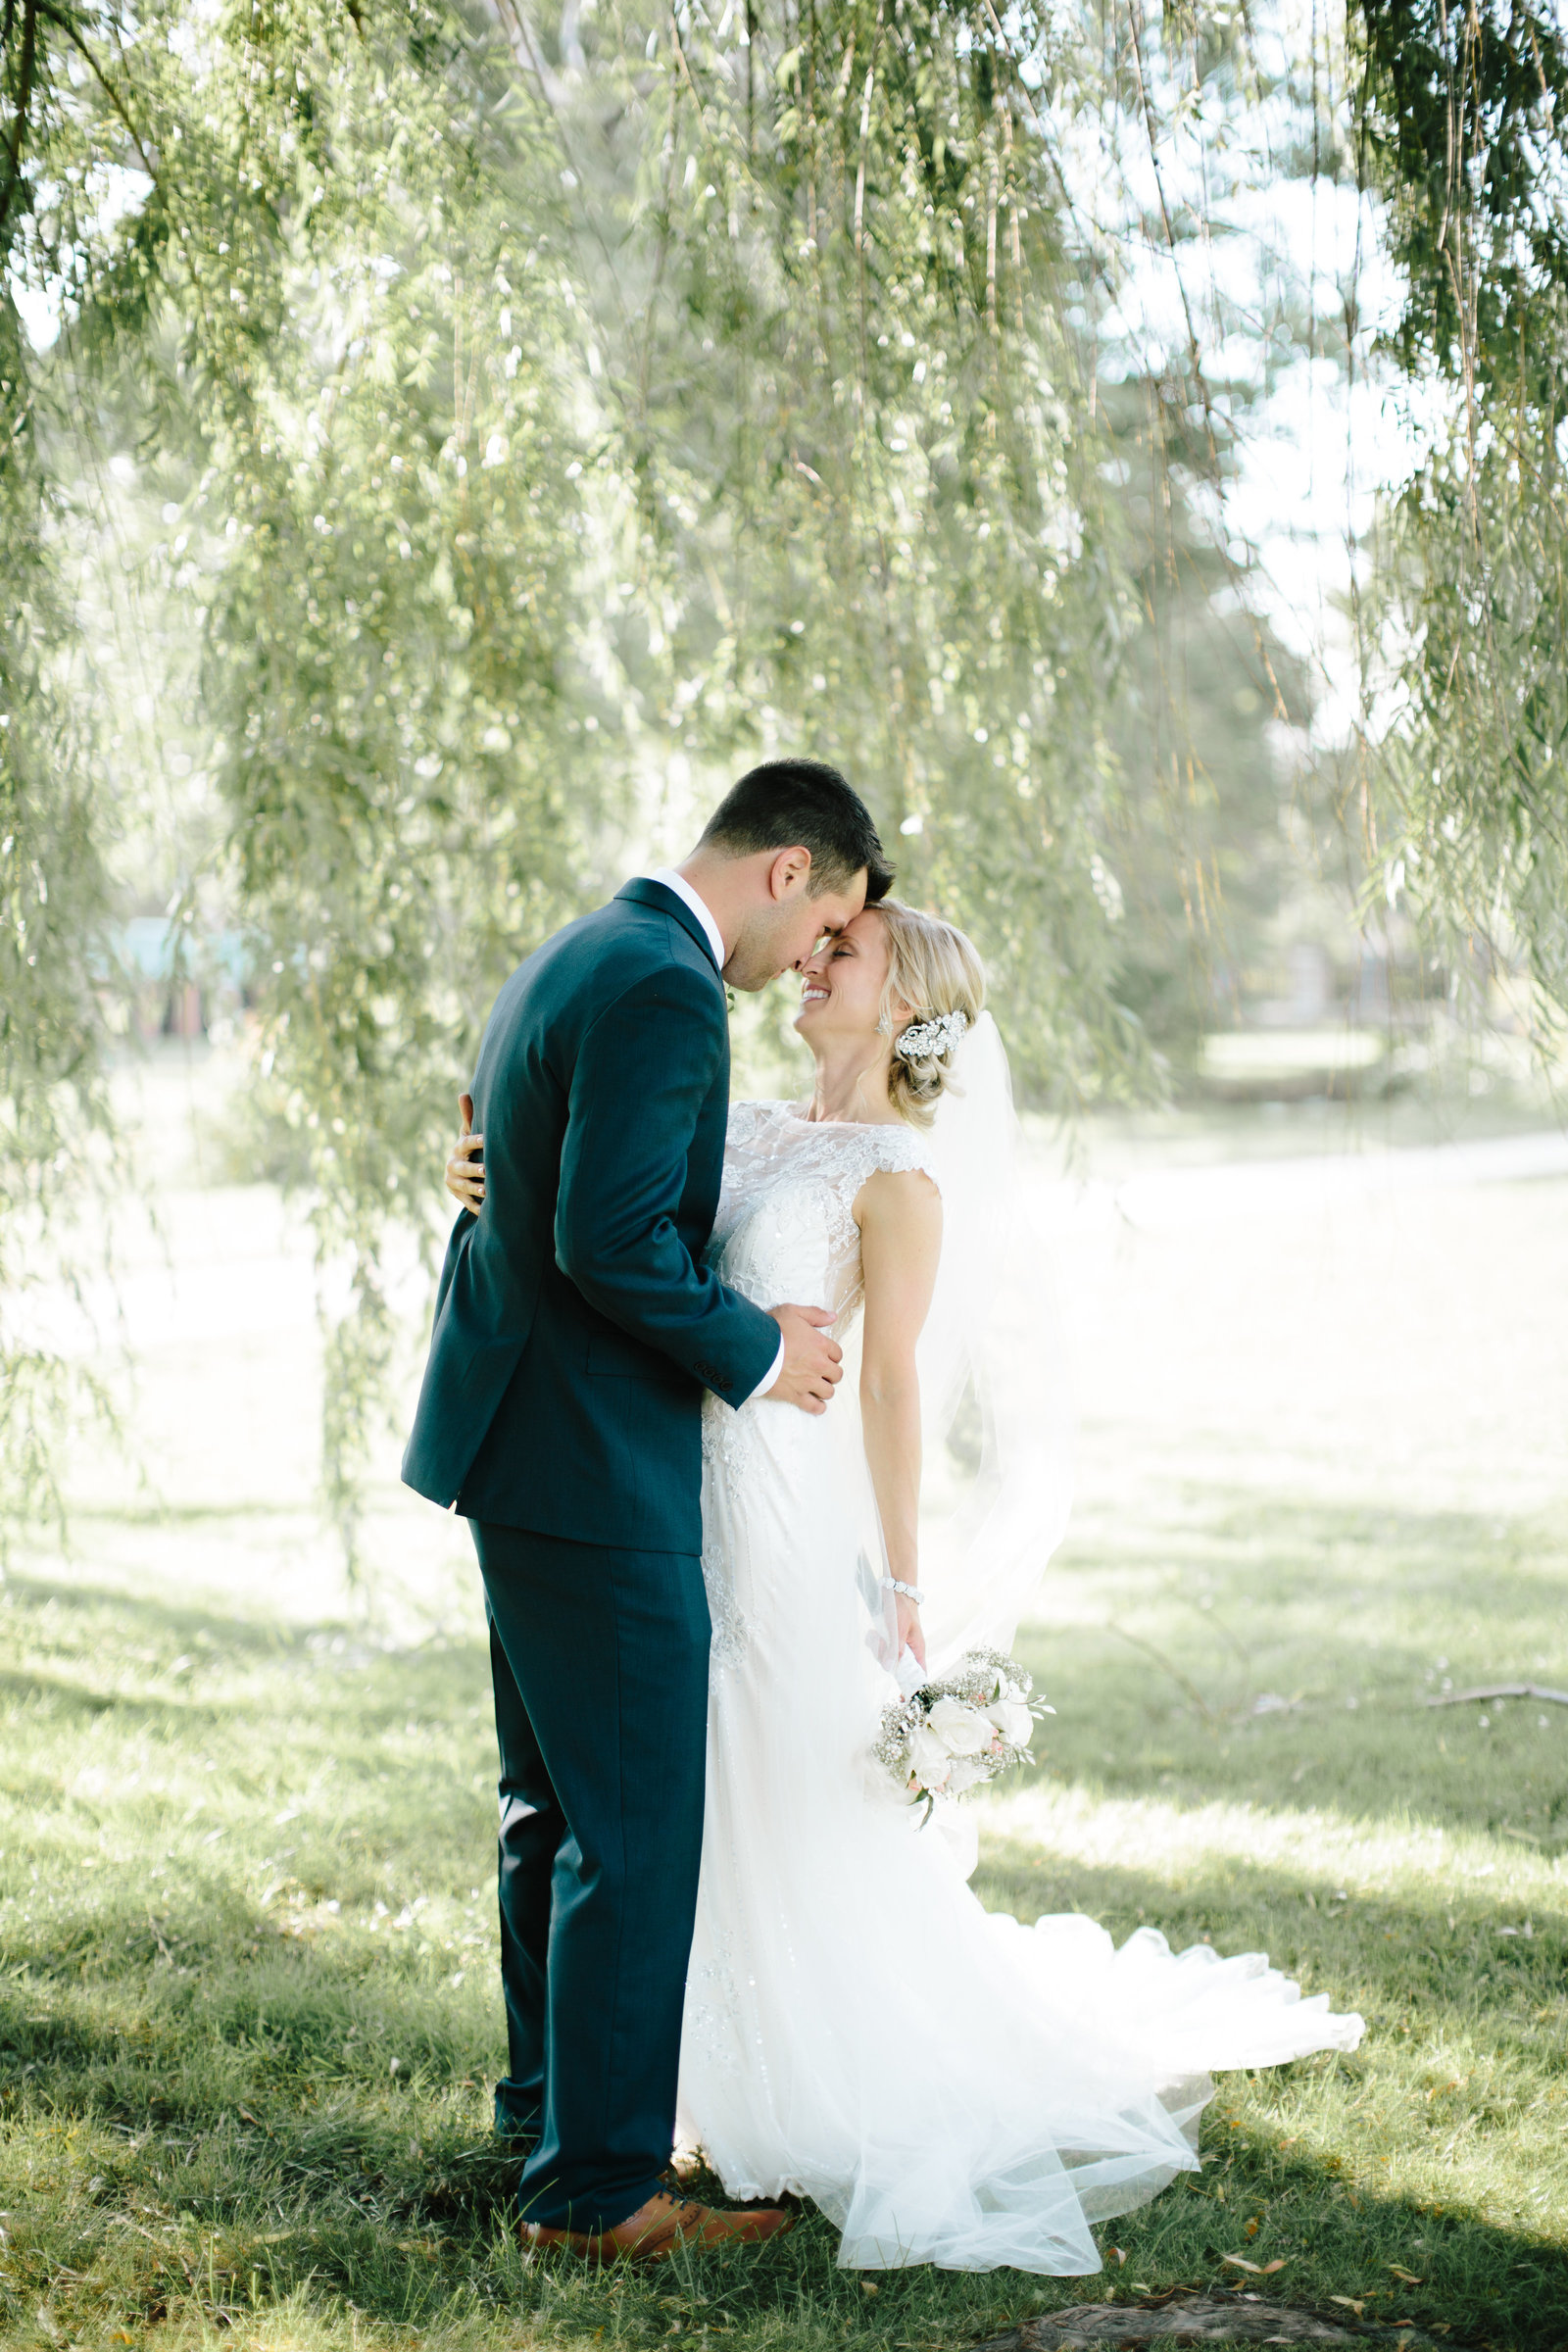 Canton Ohio wedding at Skyland Pines by Austin and Rachel Photography